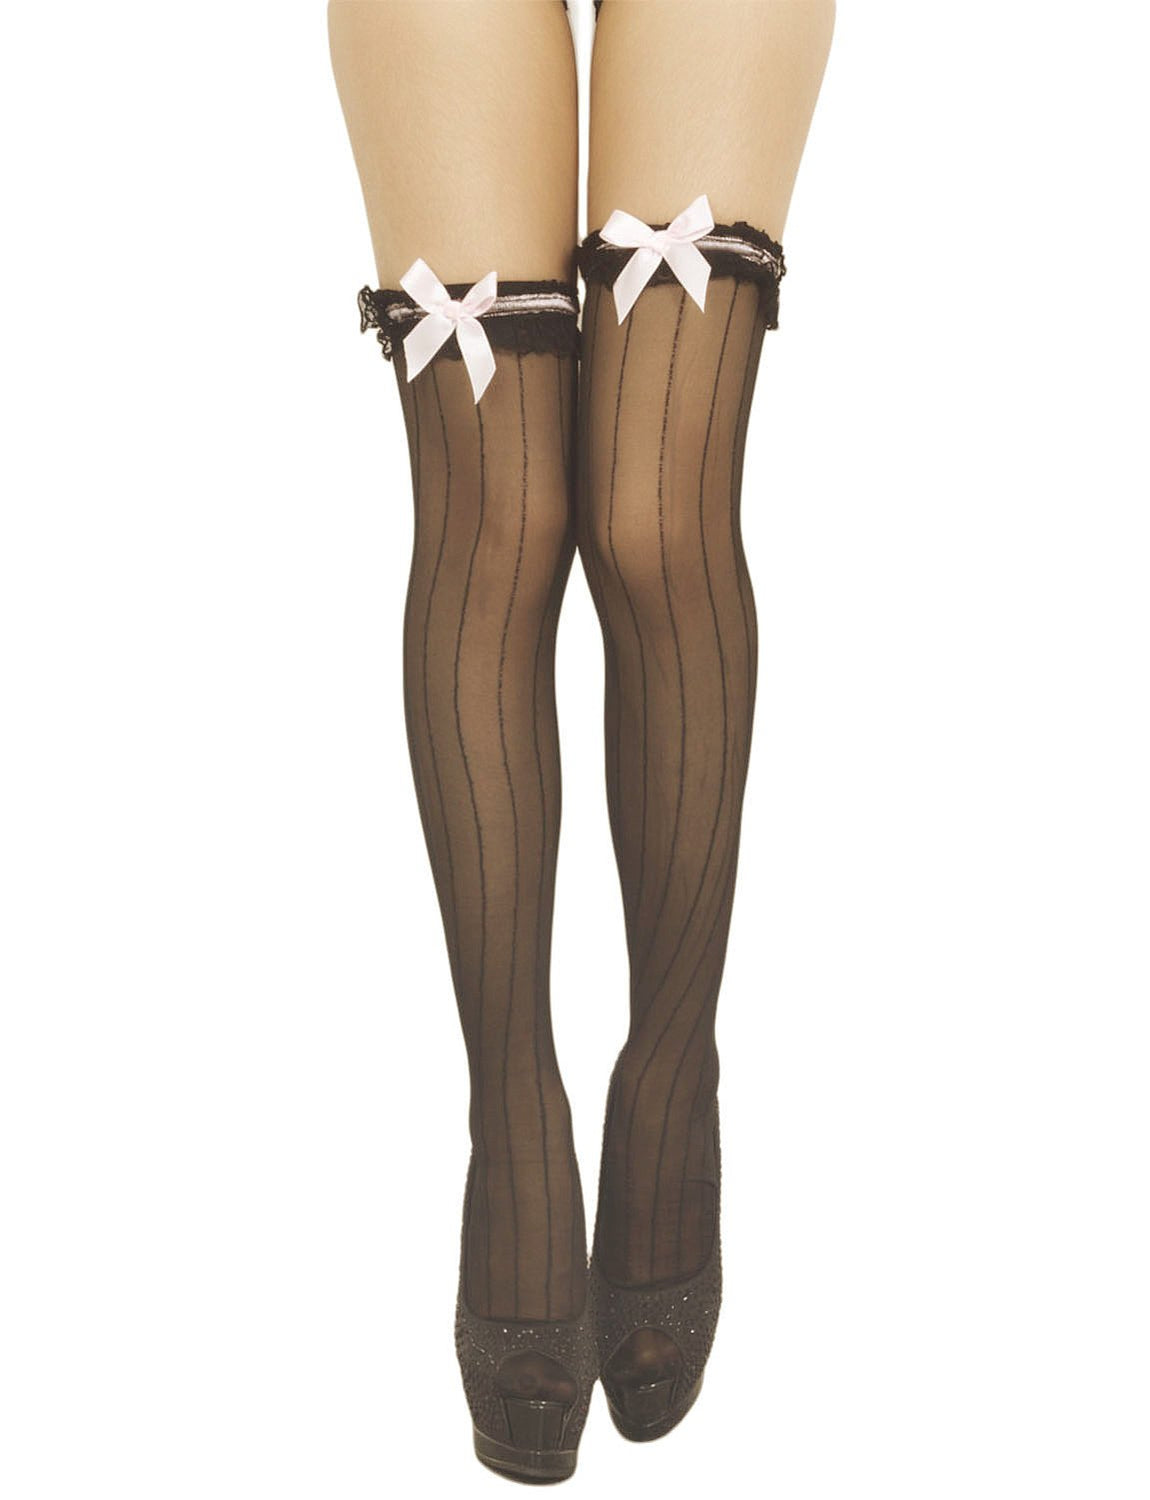 Women's Pink Bowknots Japanese Stylish Sheers Thigh High Hold-up Stockings, Size: One Size, Black